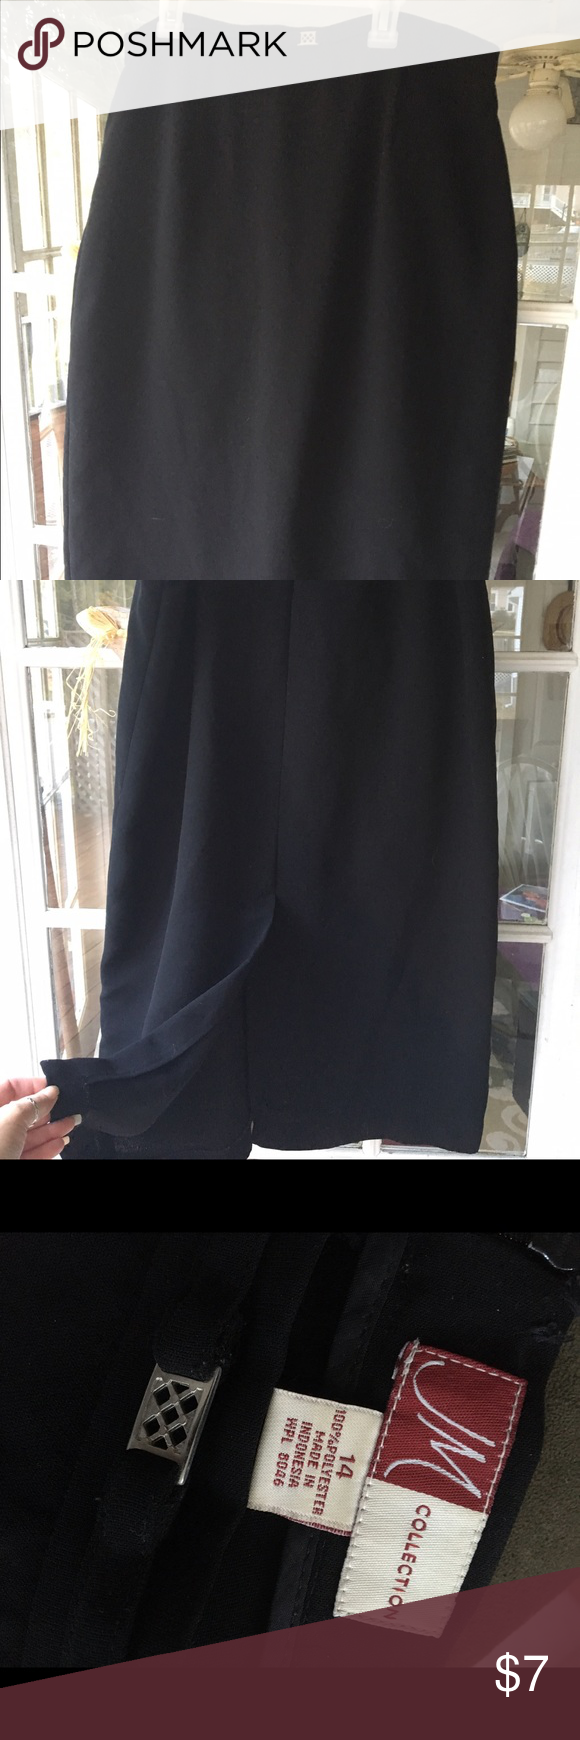 Ladies black skirt Comfortable ladies black mid calf length skirt. Bought second hand and wore once. Kick pleat in the back. True sizing and machine washable. JM Skirts Maxi